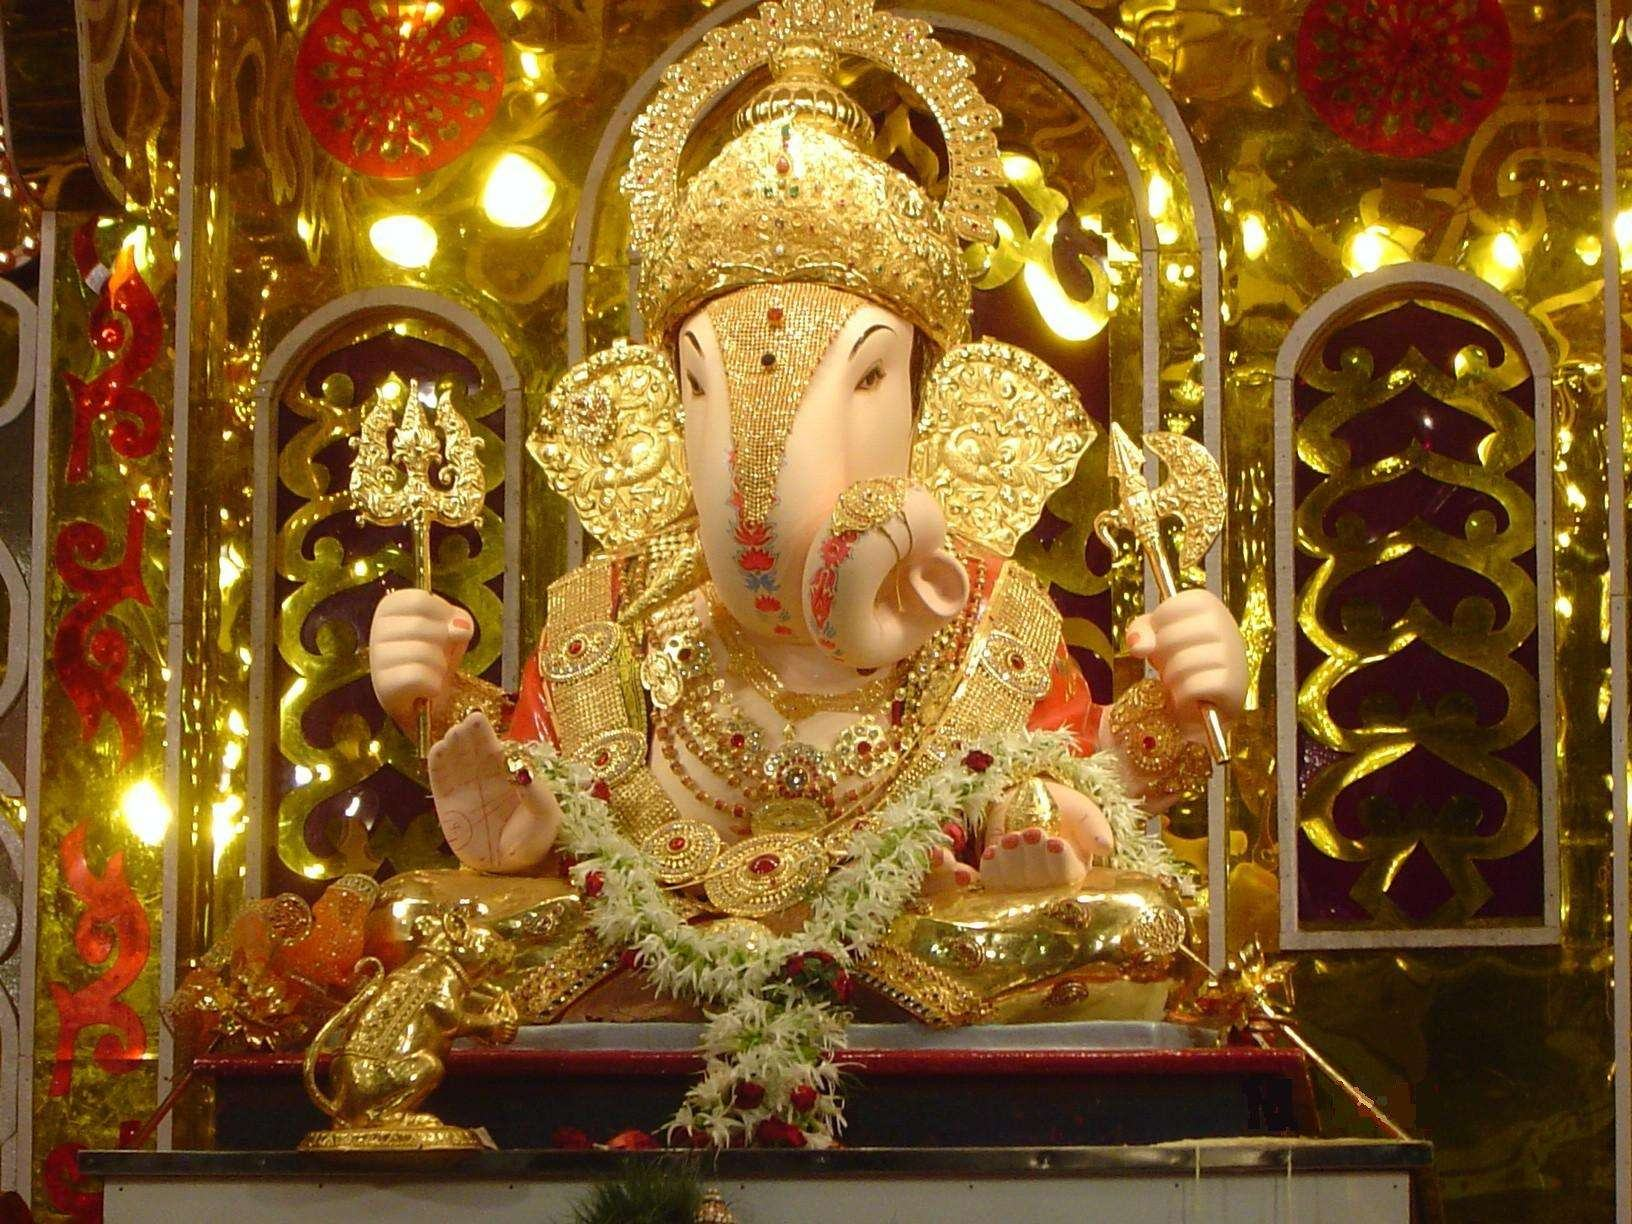 Hd wallpaper ganesh - Ganesha Wallpapers For Laptop